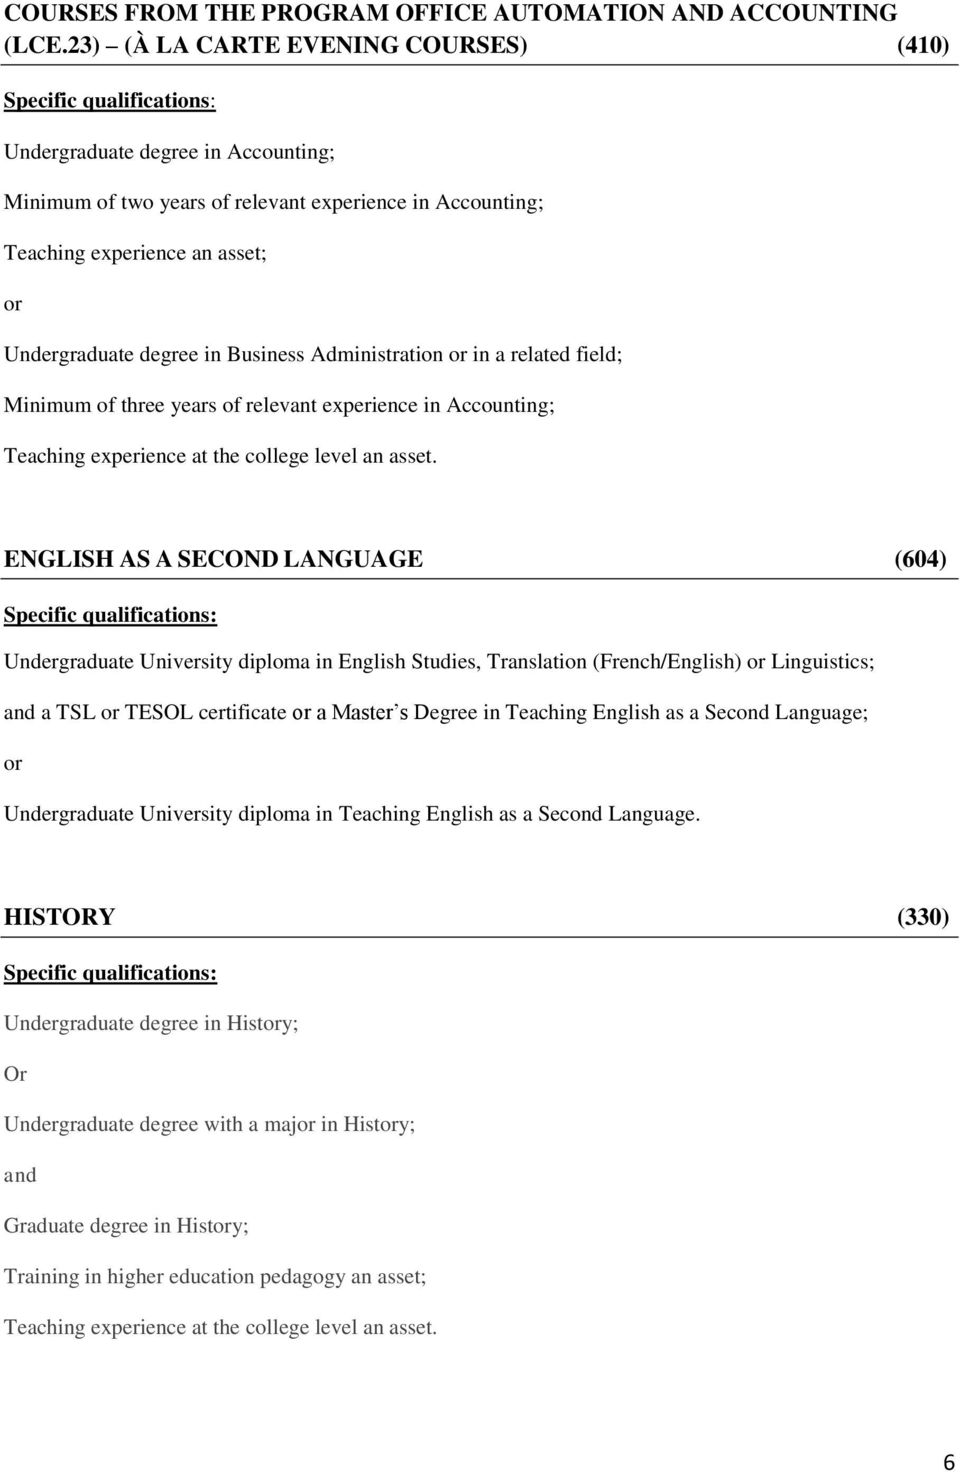 (604) Undergraduate University diploma in English Studies, Translation (French/English) Linguistics; and a TSL TESOL certificate a Master s Degree in Teaching